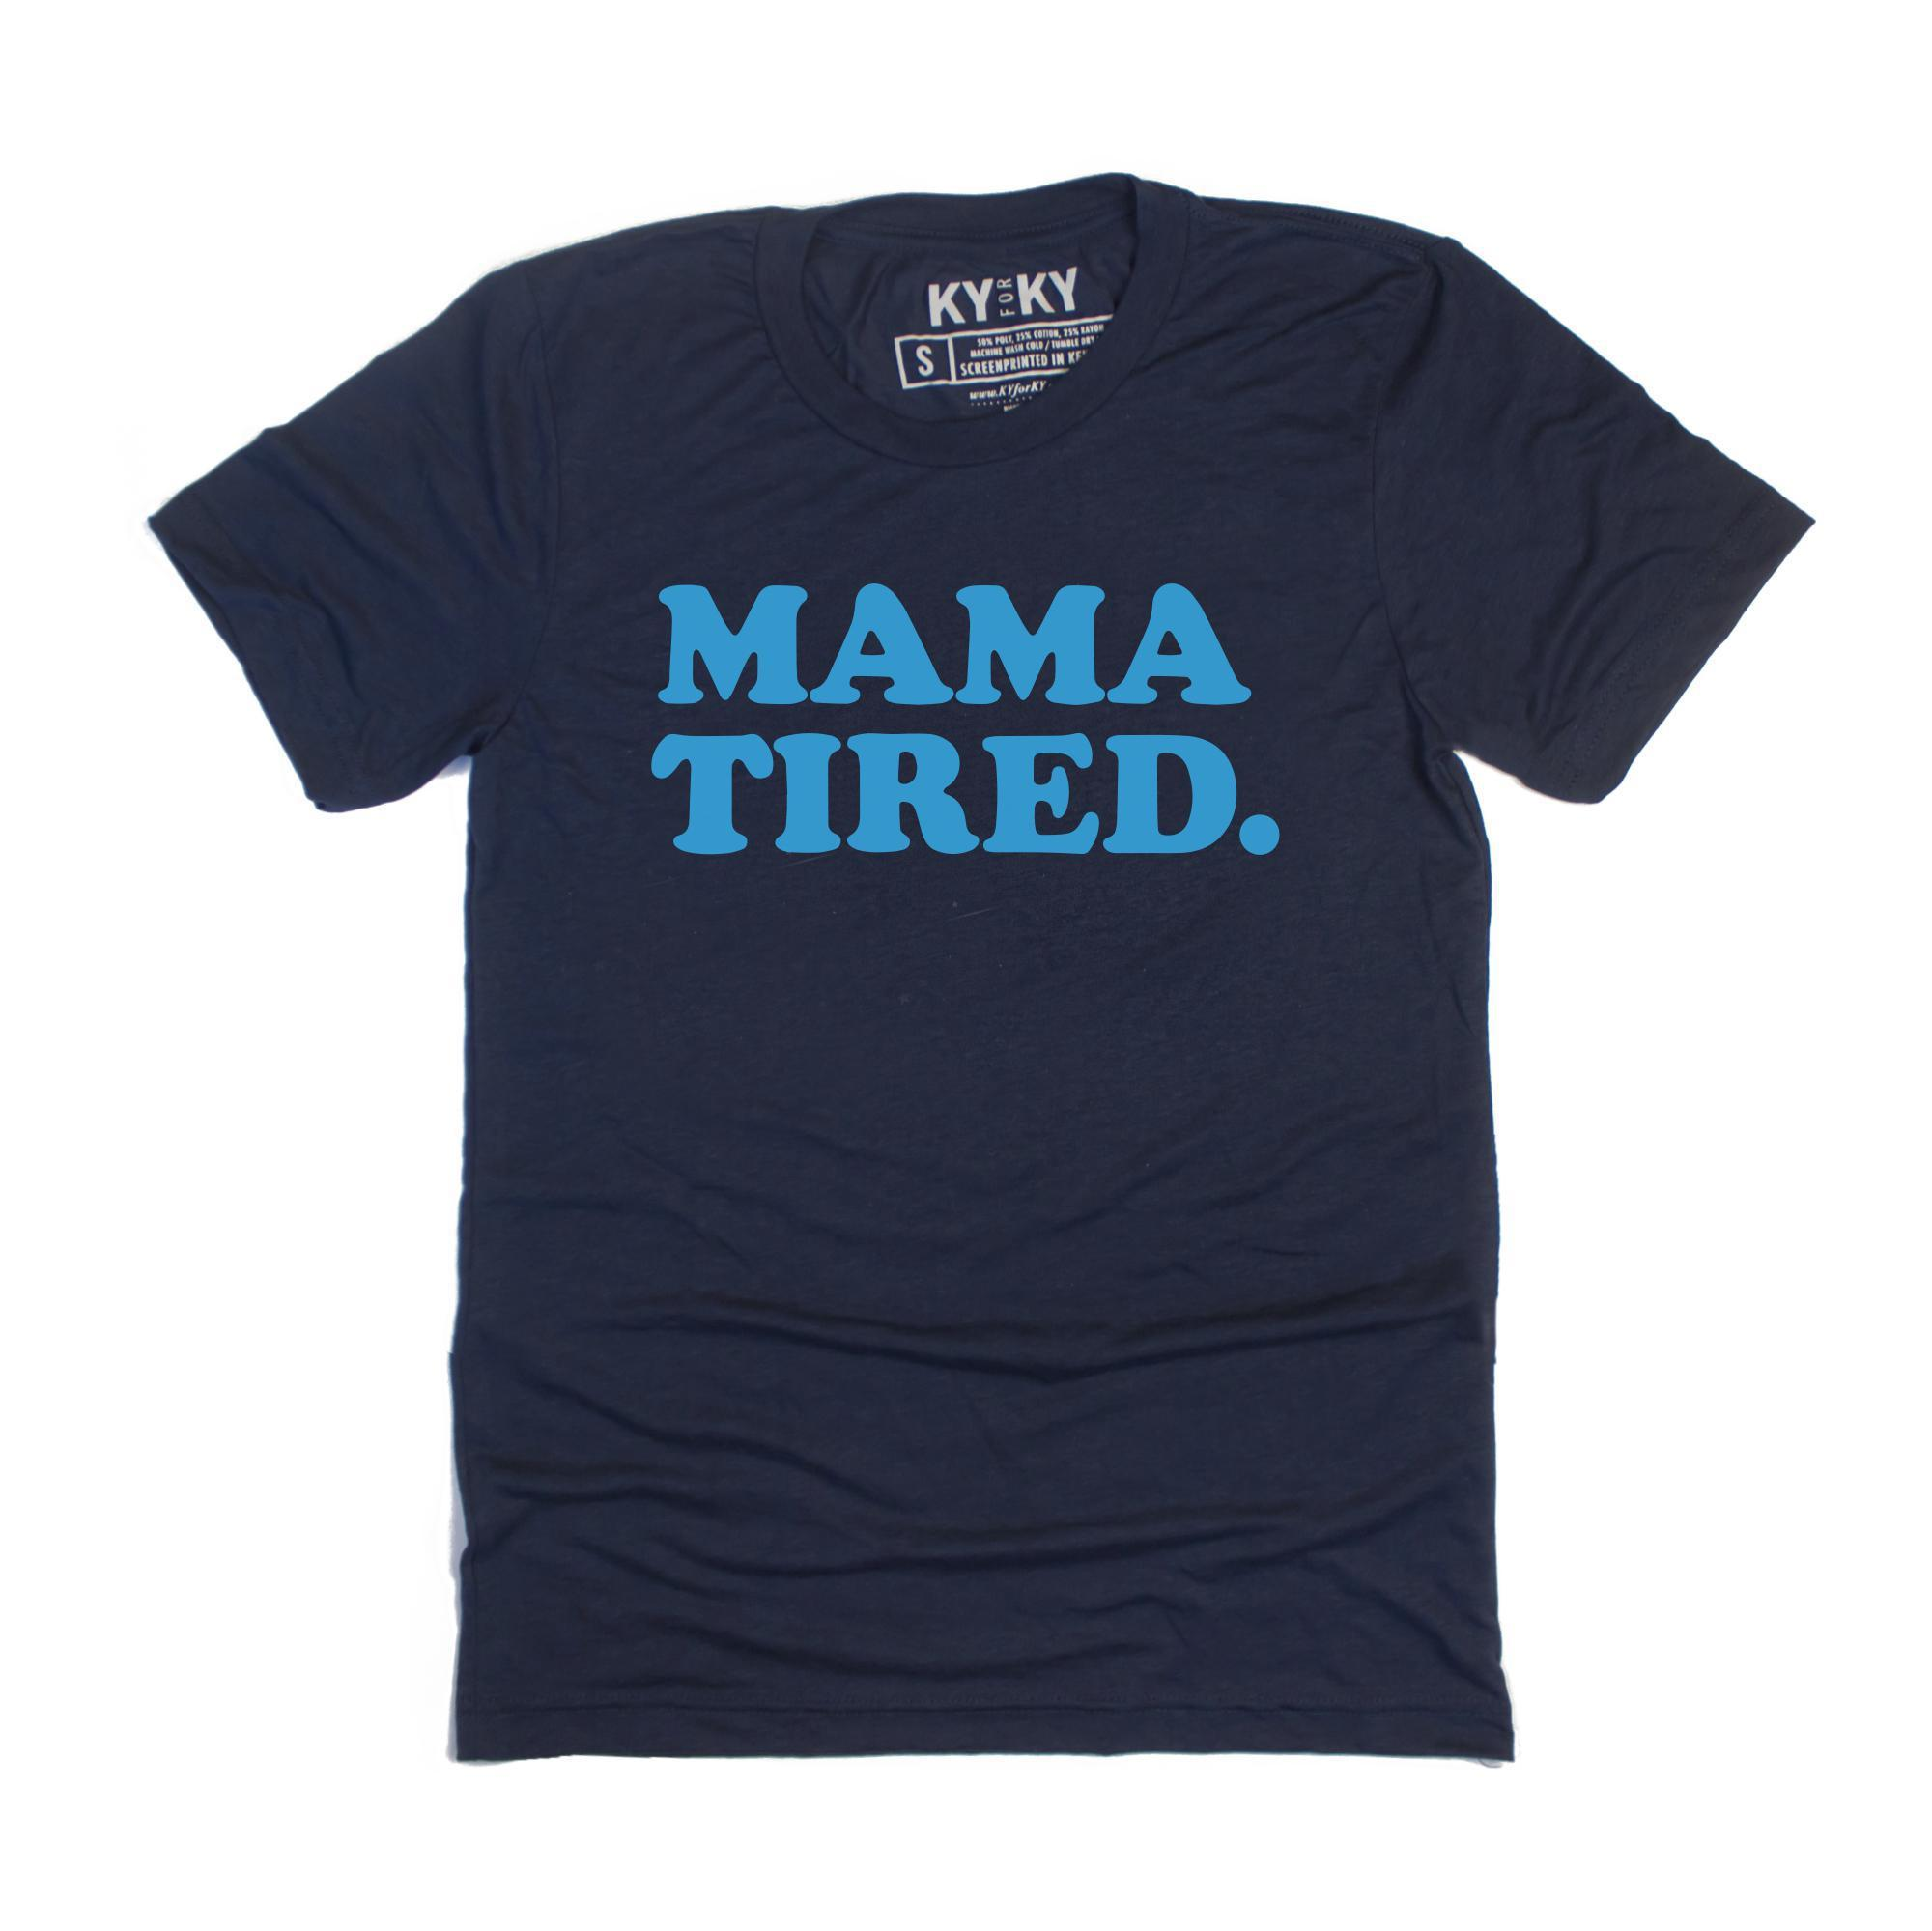 MAMA TIRED. T-Shirt-T-Shirt-Southern Socks